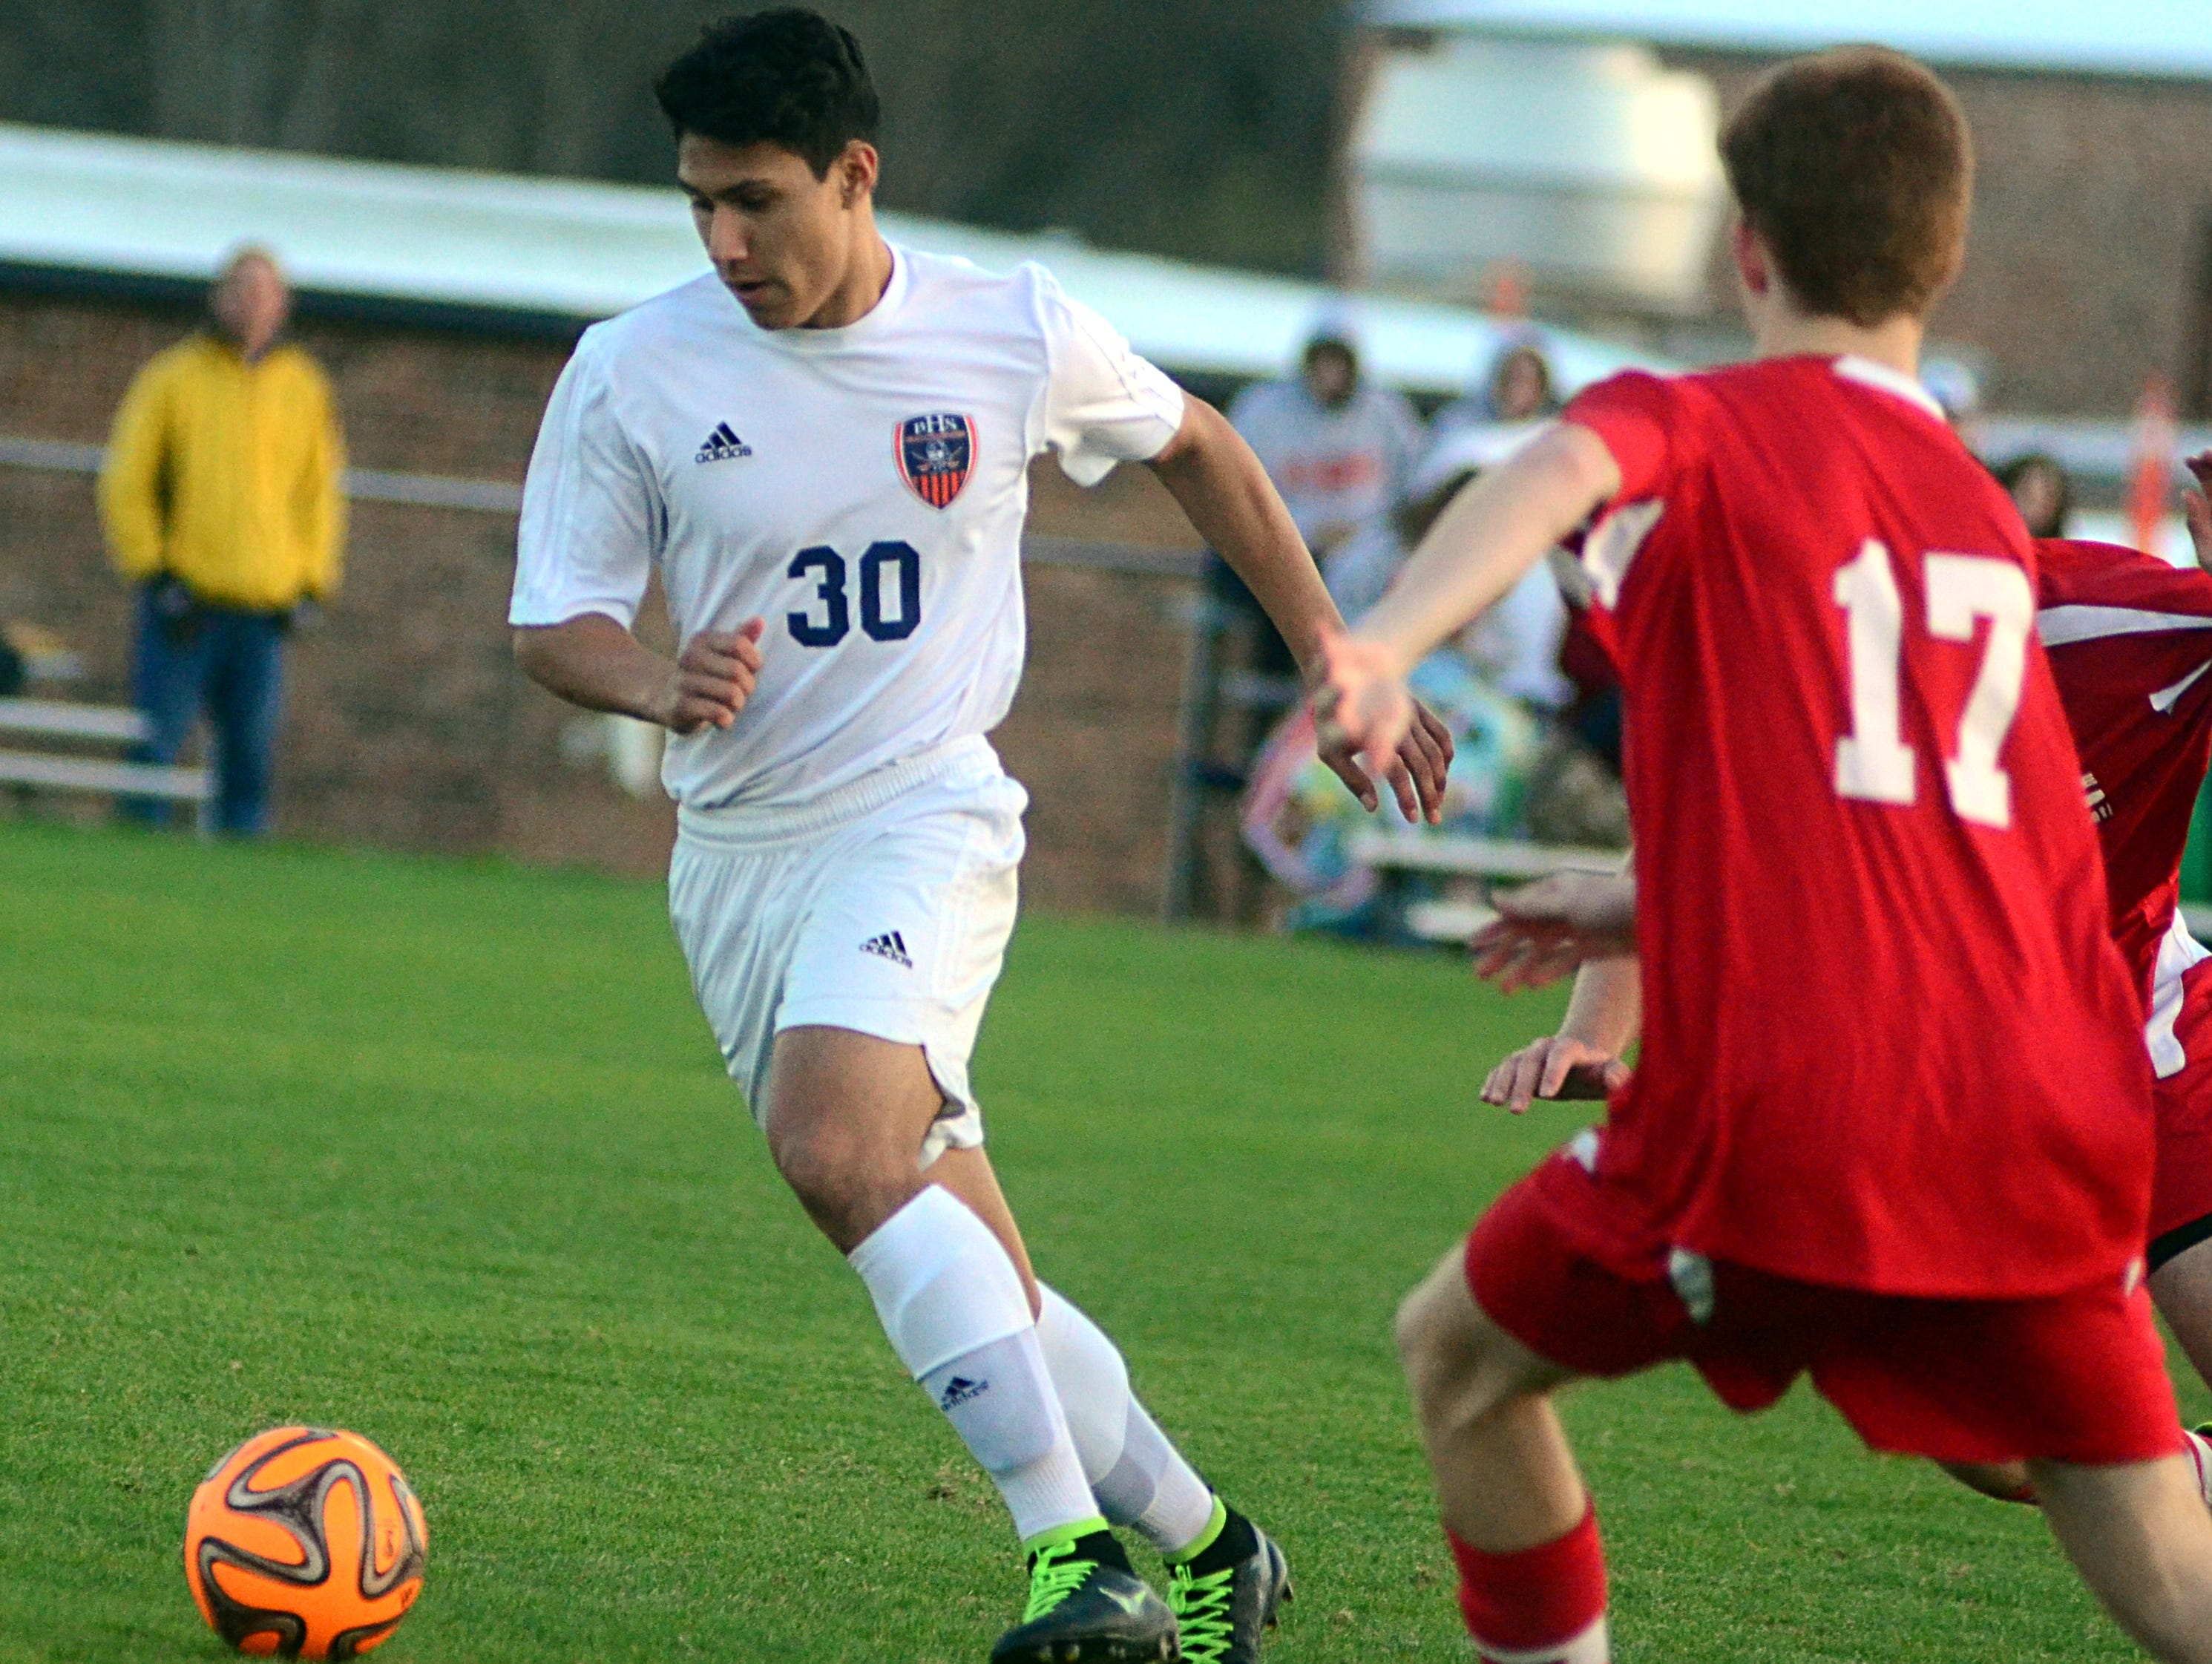 Beech High junior Lorenzo Huerta gains possession as Middle Tennessee Fire junior Parker Miller converges during first-half action.